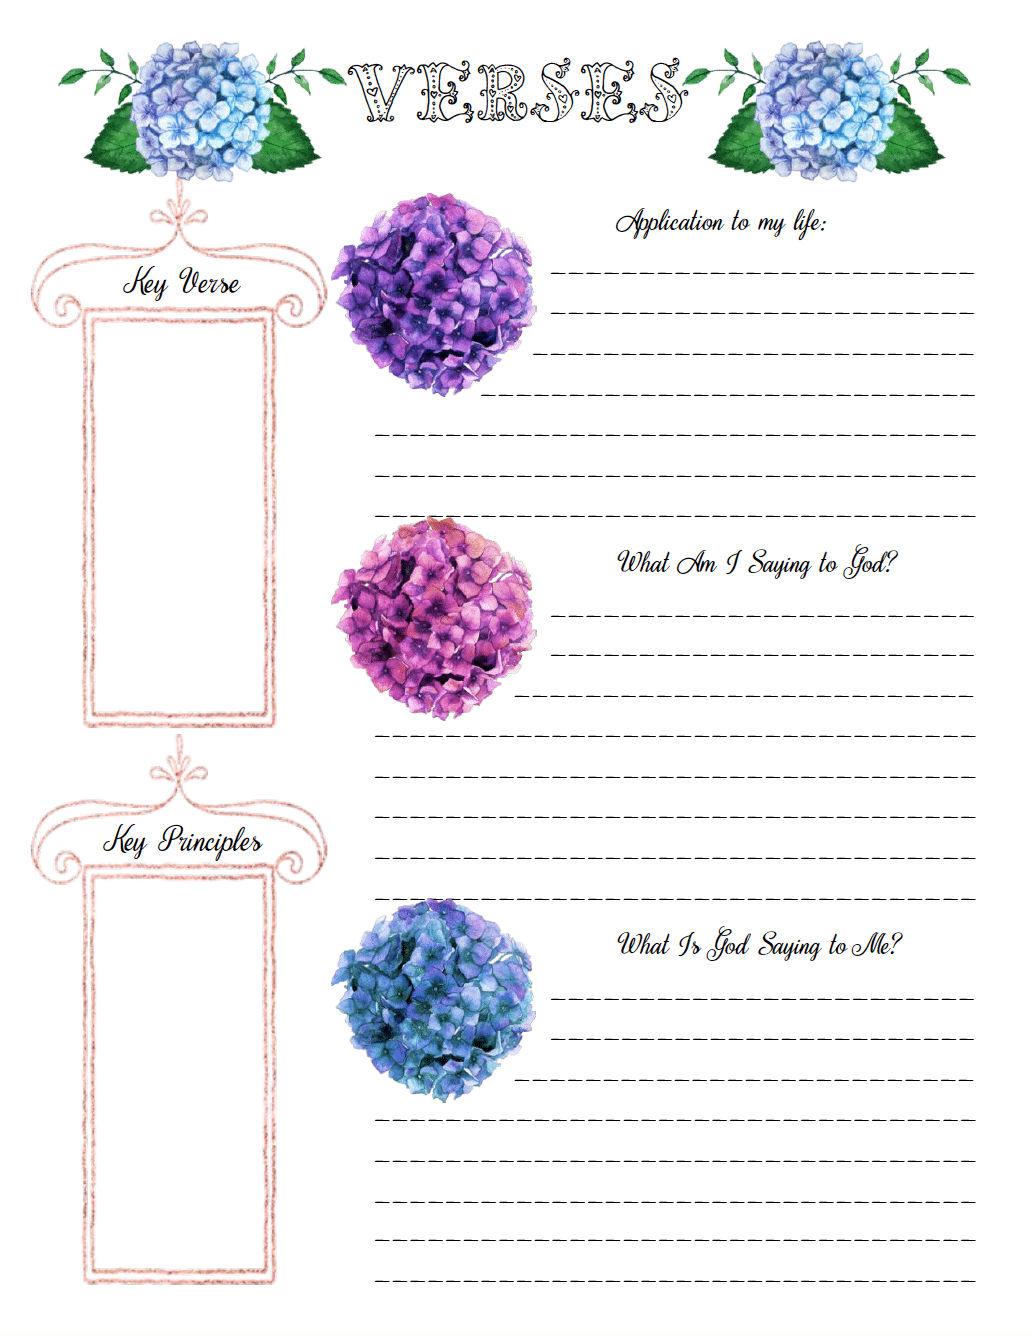 15 Free Bible Journaling Printables And Templates